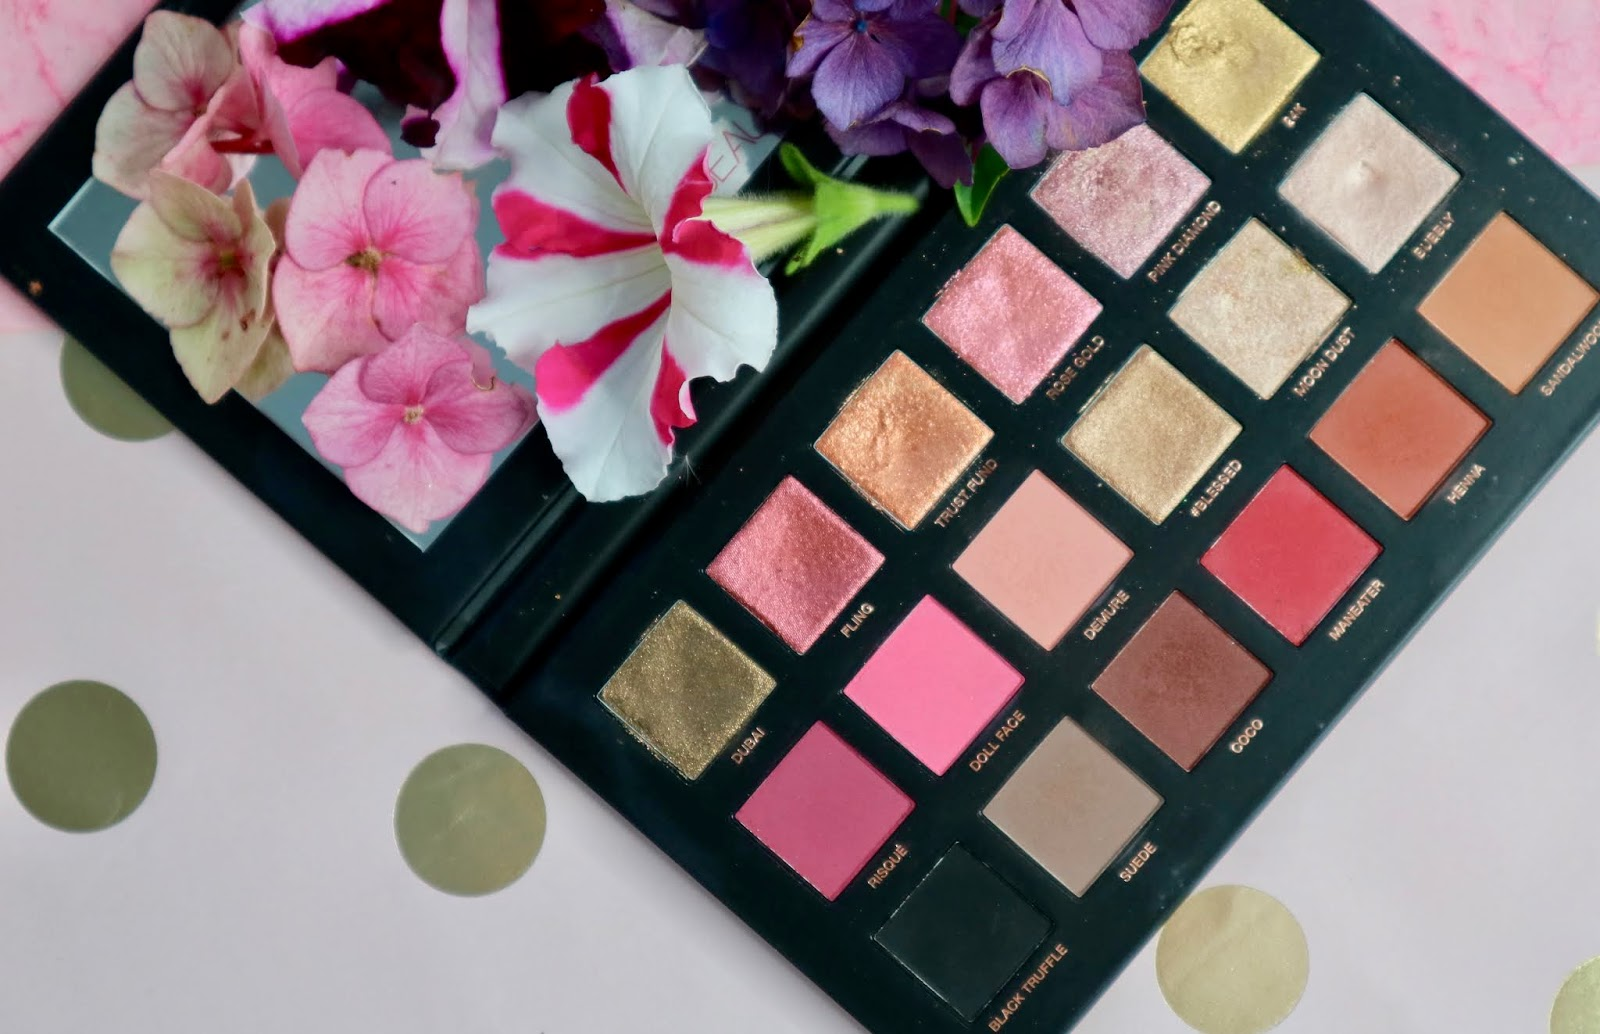 Huda Beauty Drops the Rose Gold Remastered Eyeshadow Palette